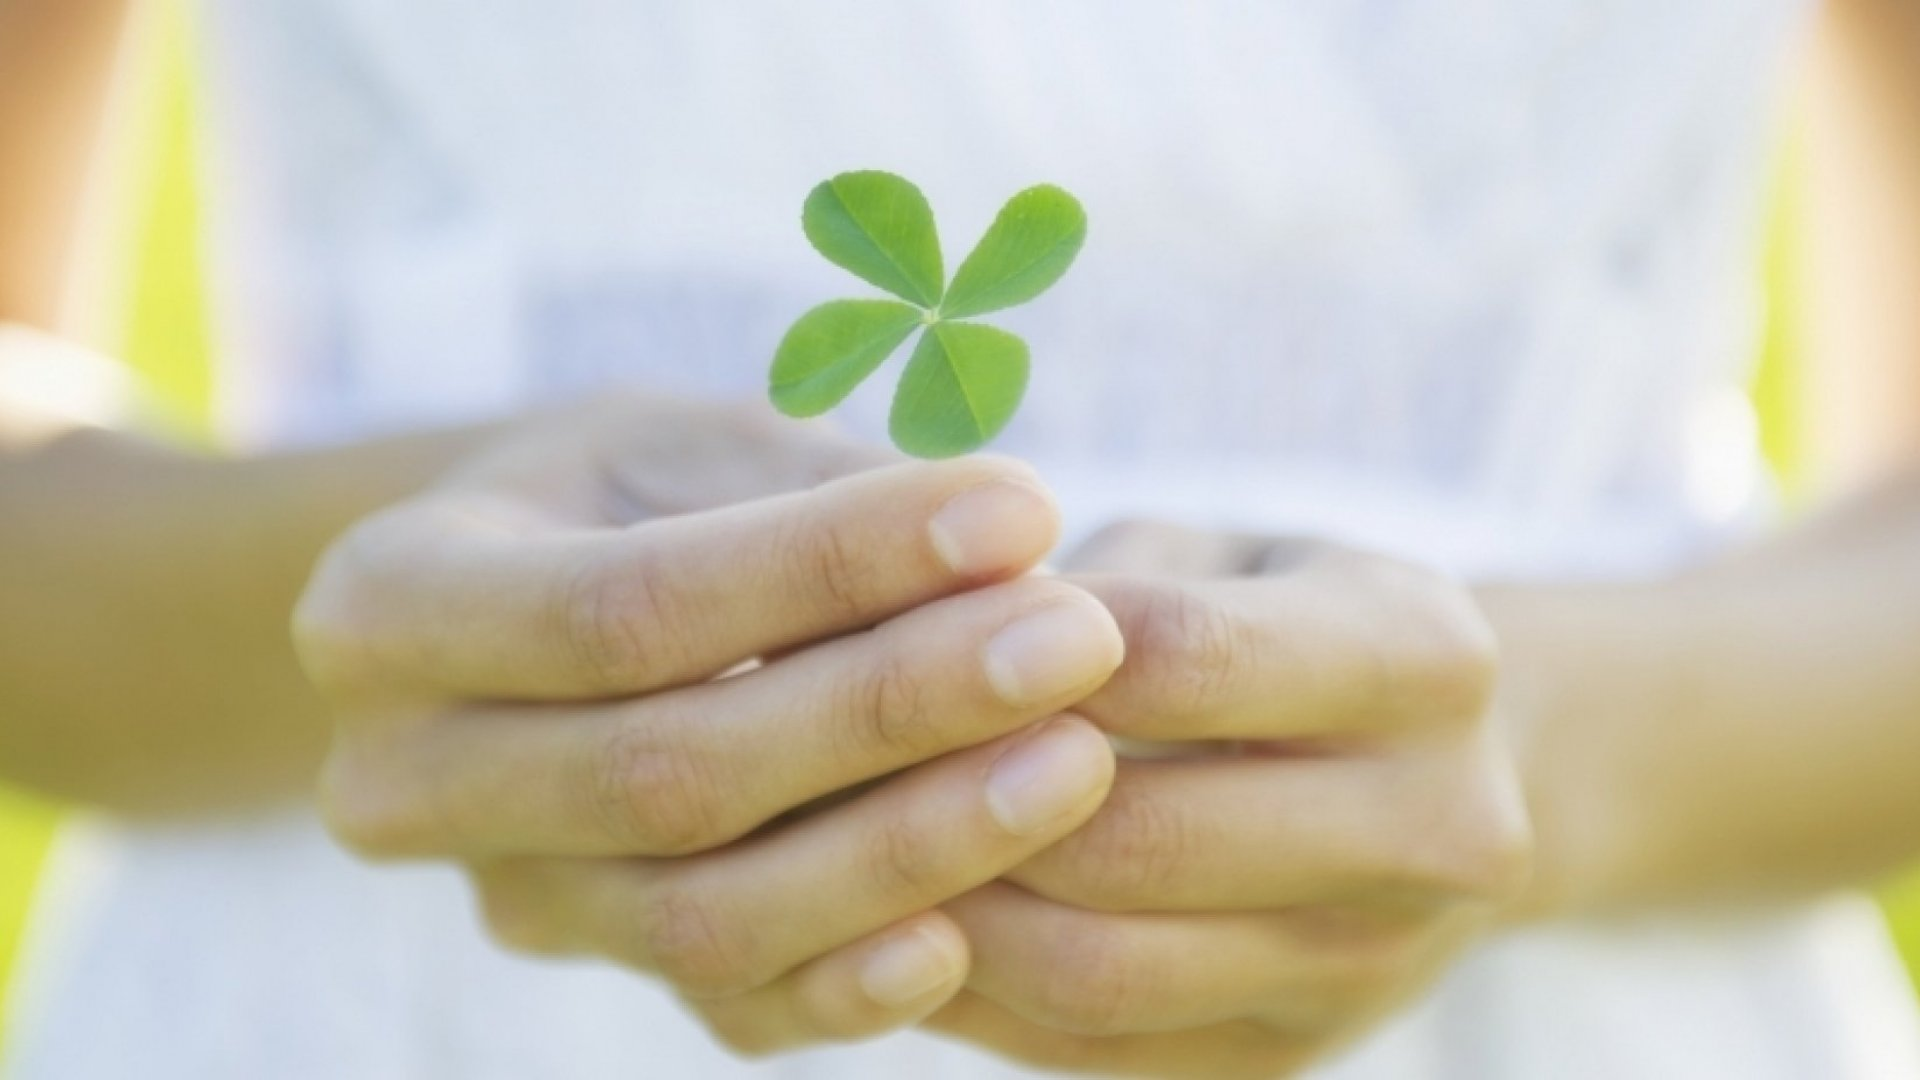 5 Powerful Ways to Make Your Own Luck